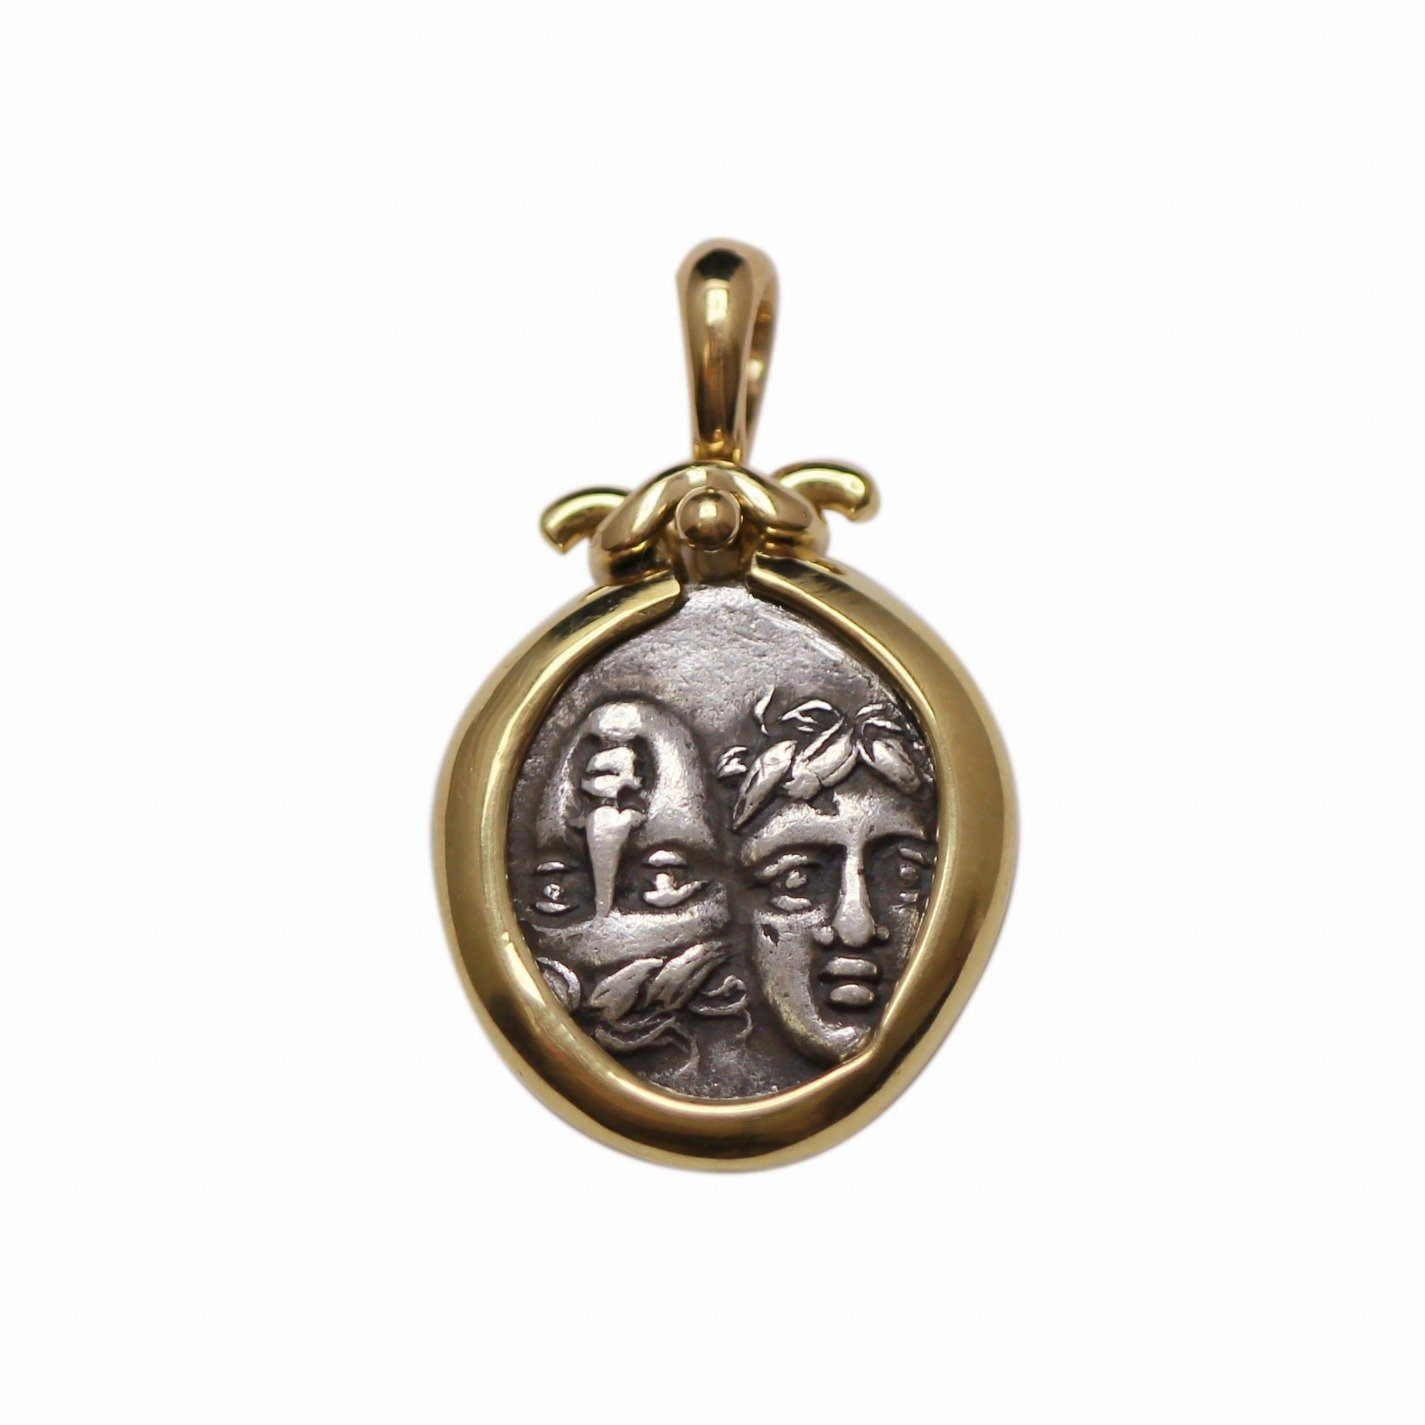 18K Gold Pendant, Istros, Drachma Coin, ID13331 - Erez Ancient Coin Jewelry